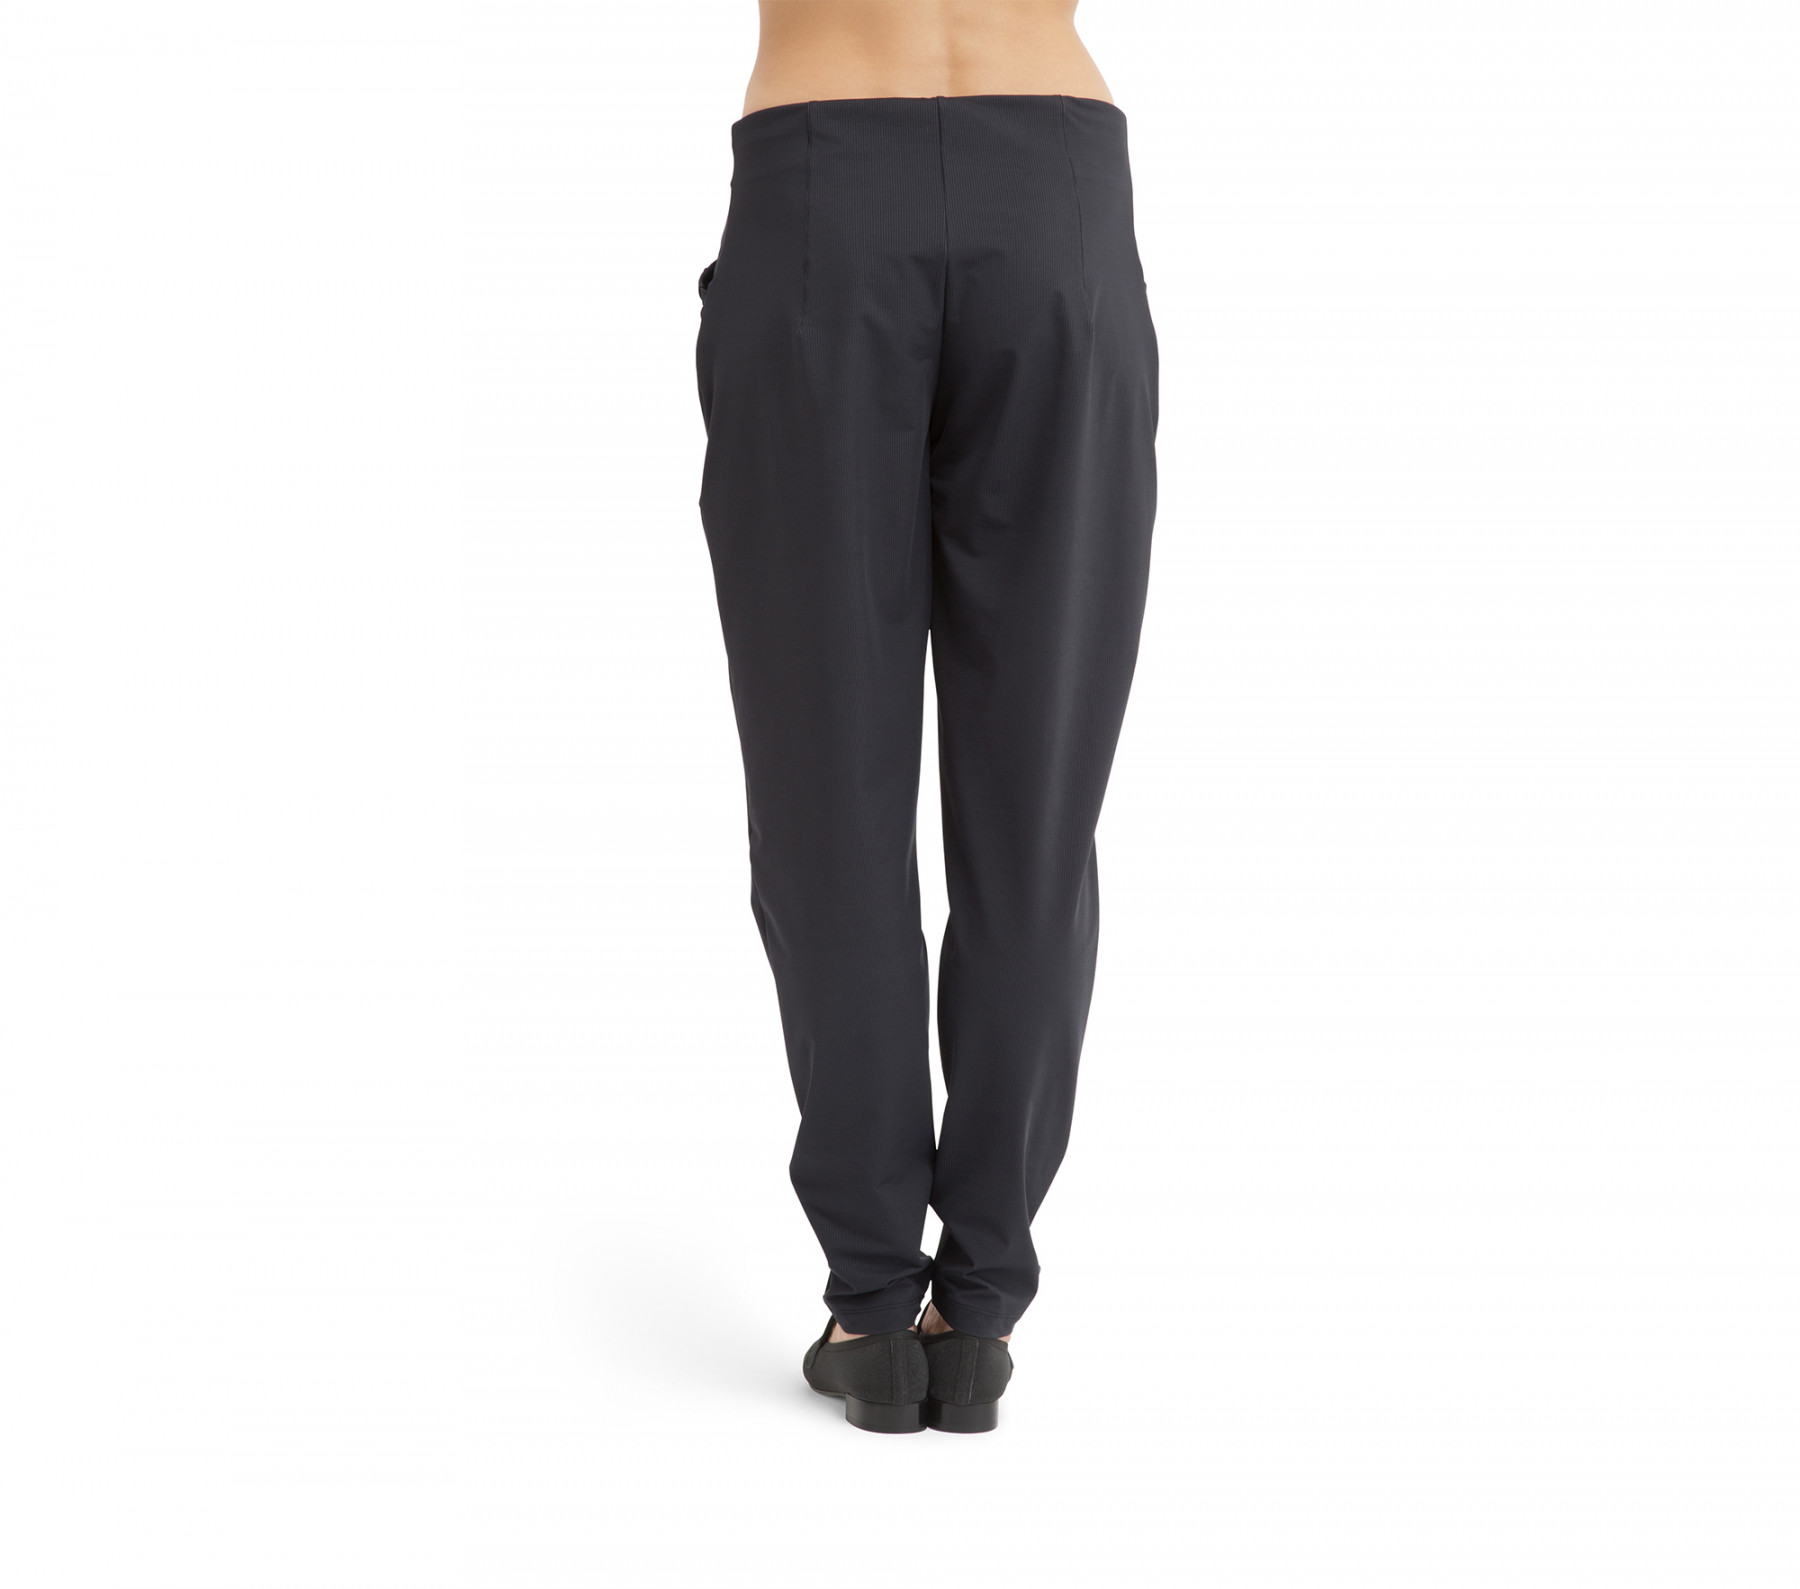 Hohe Taille Stretch Hose